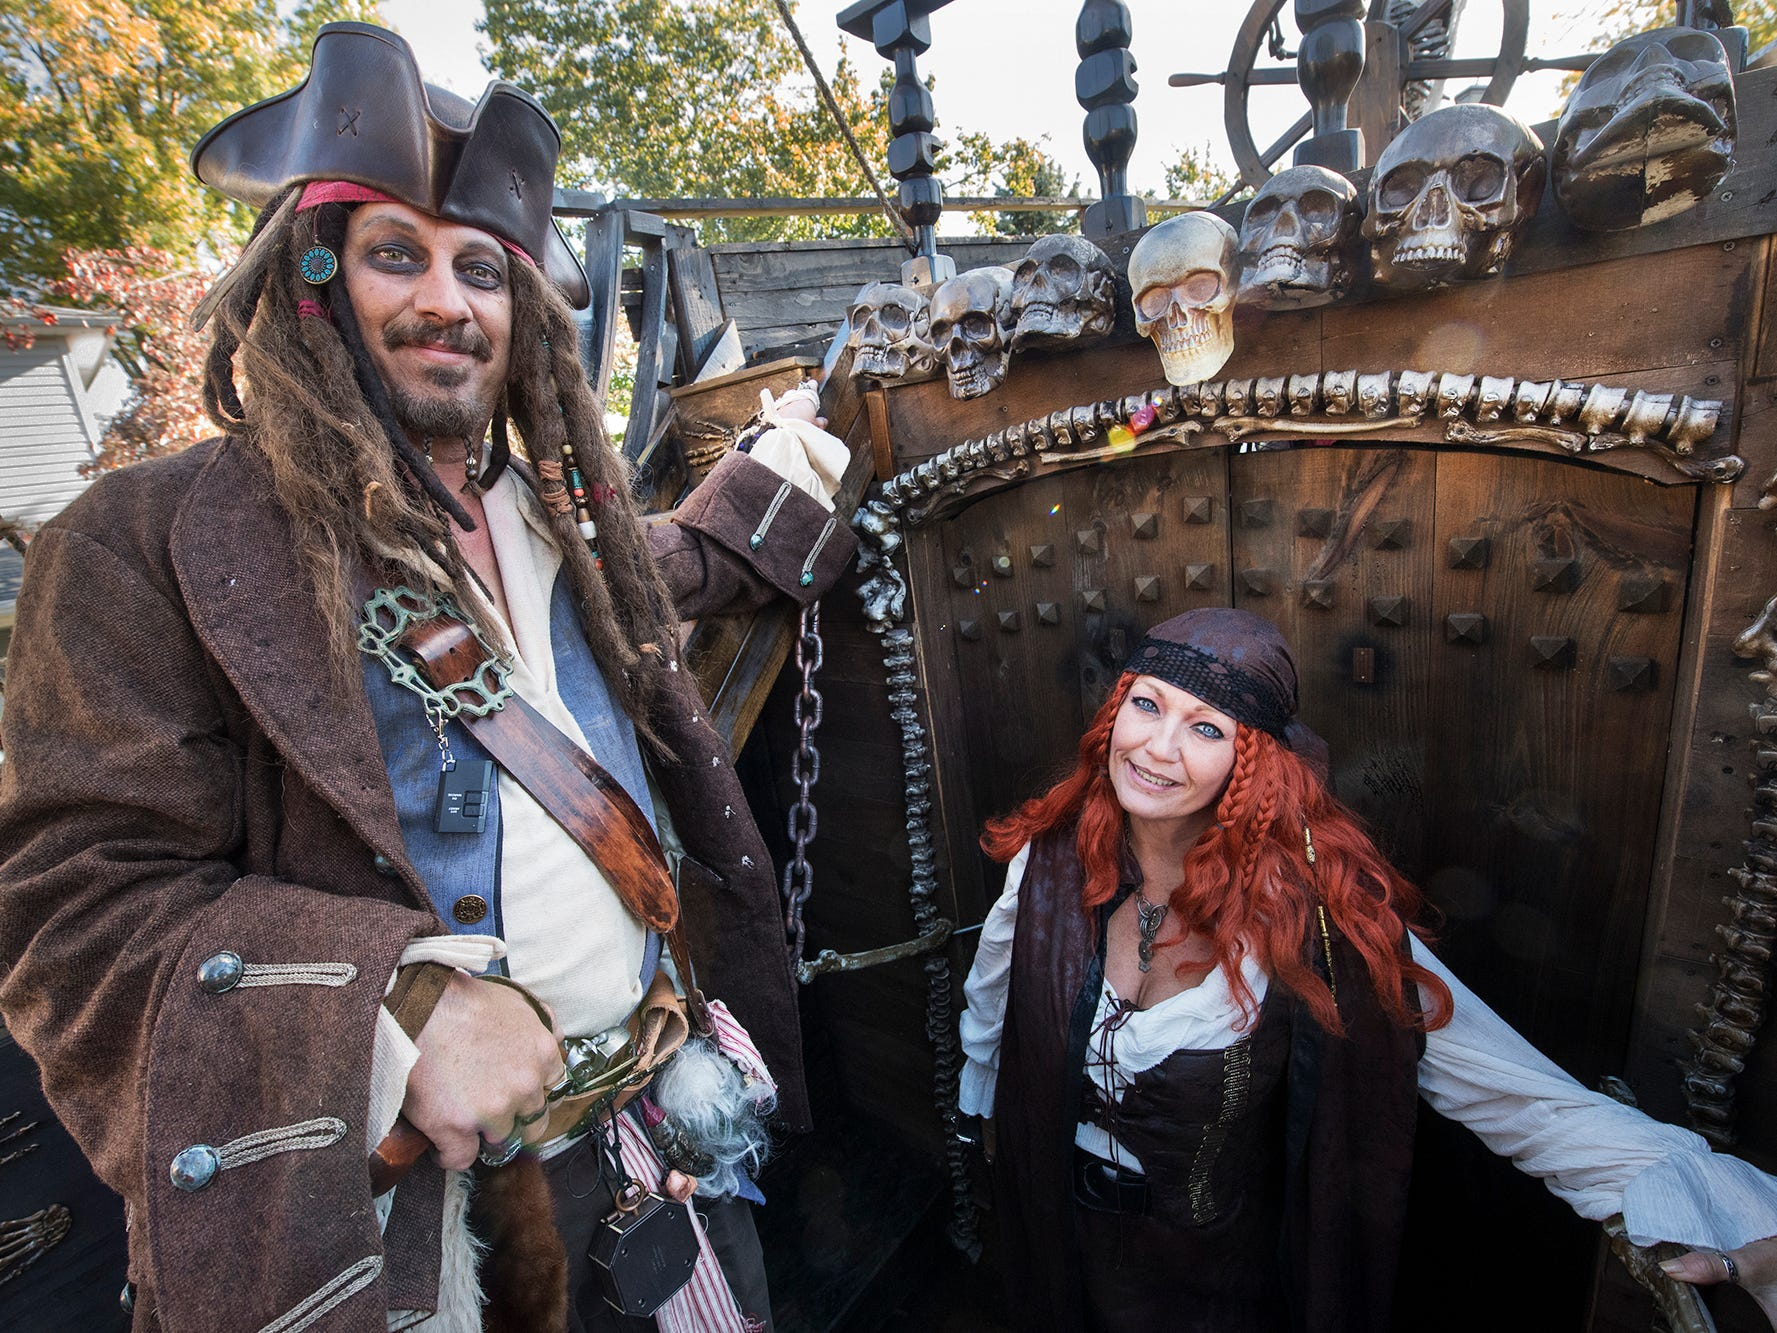 A.J. Rosbrook, left, stands with his wife, Traci, on the deck of the pirate ship during the 53rd Annual Manchester/Mt. Wolf Halloween Parade.